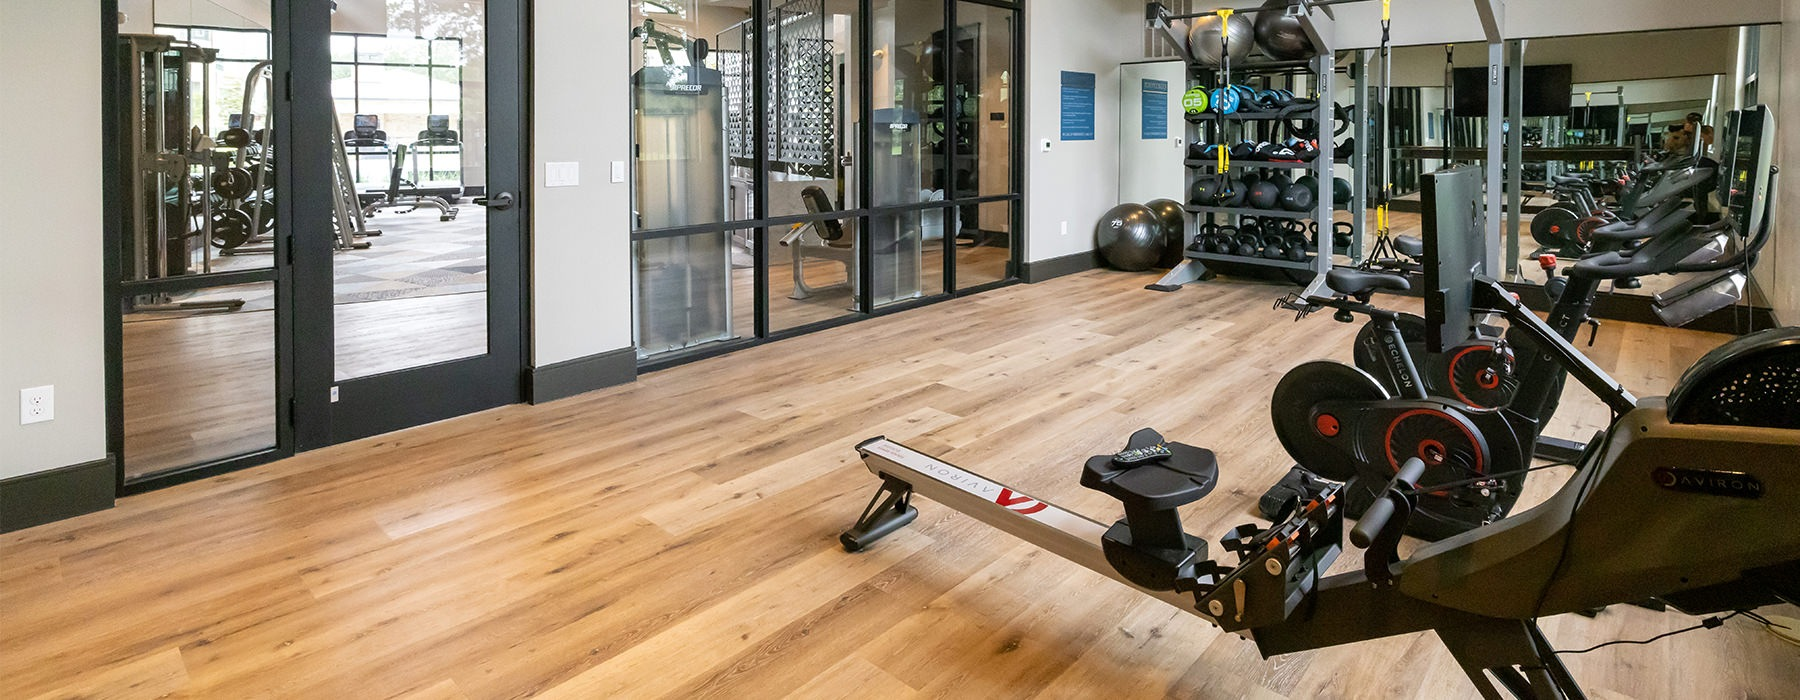 Spacious well lit gym with wood floors and weight machines